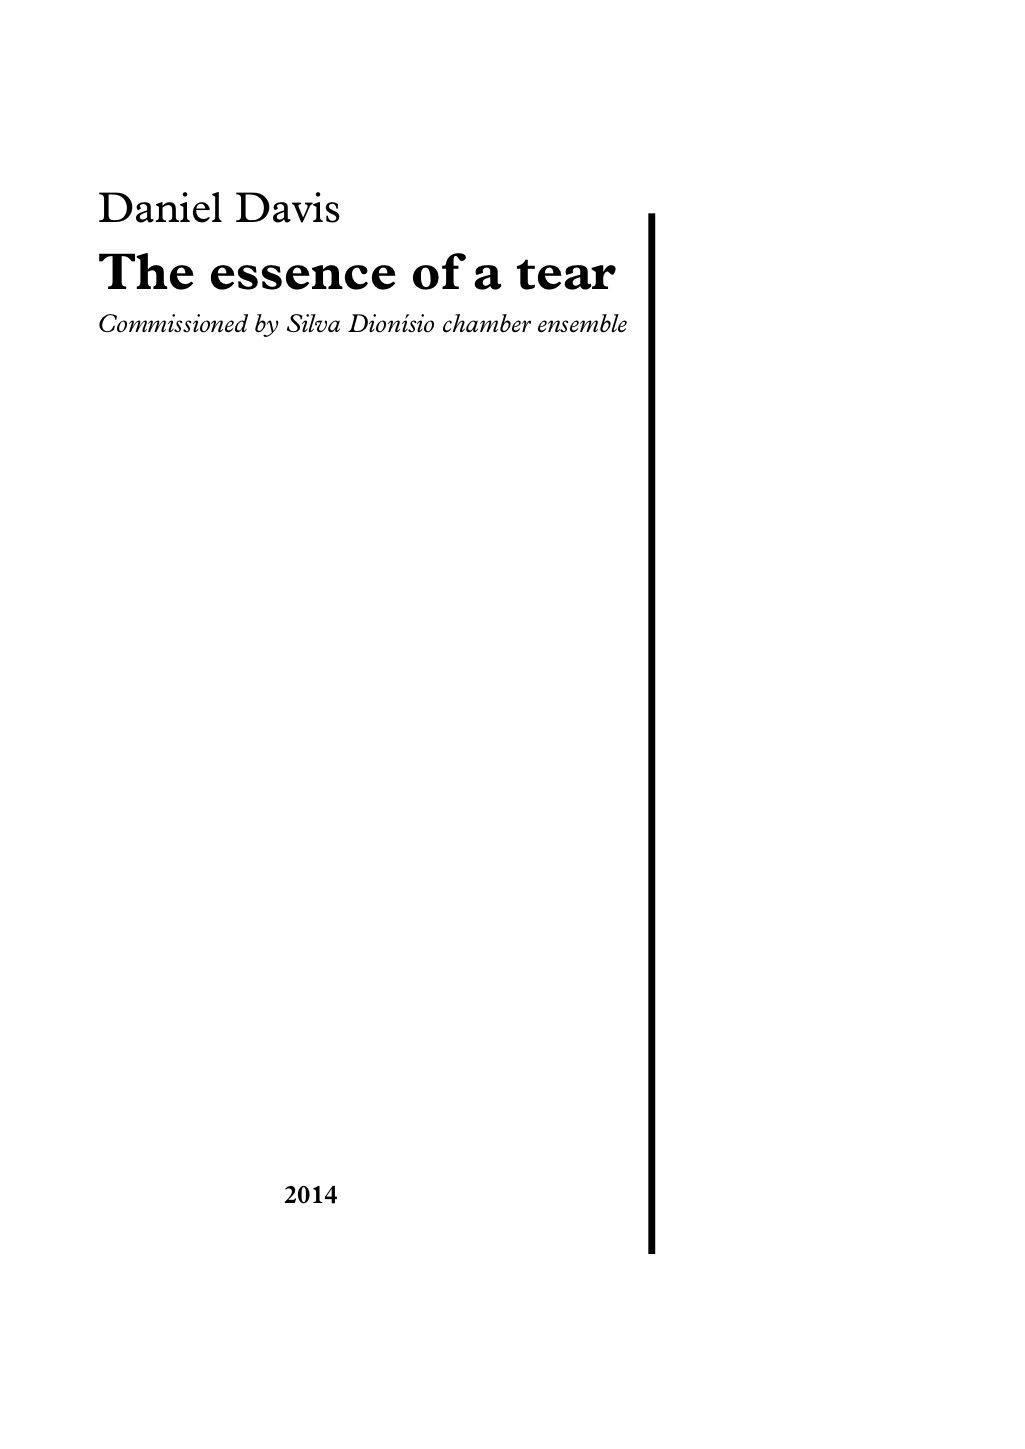 The essence of a tear (2014)